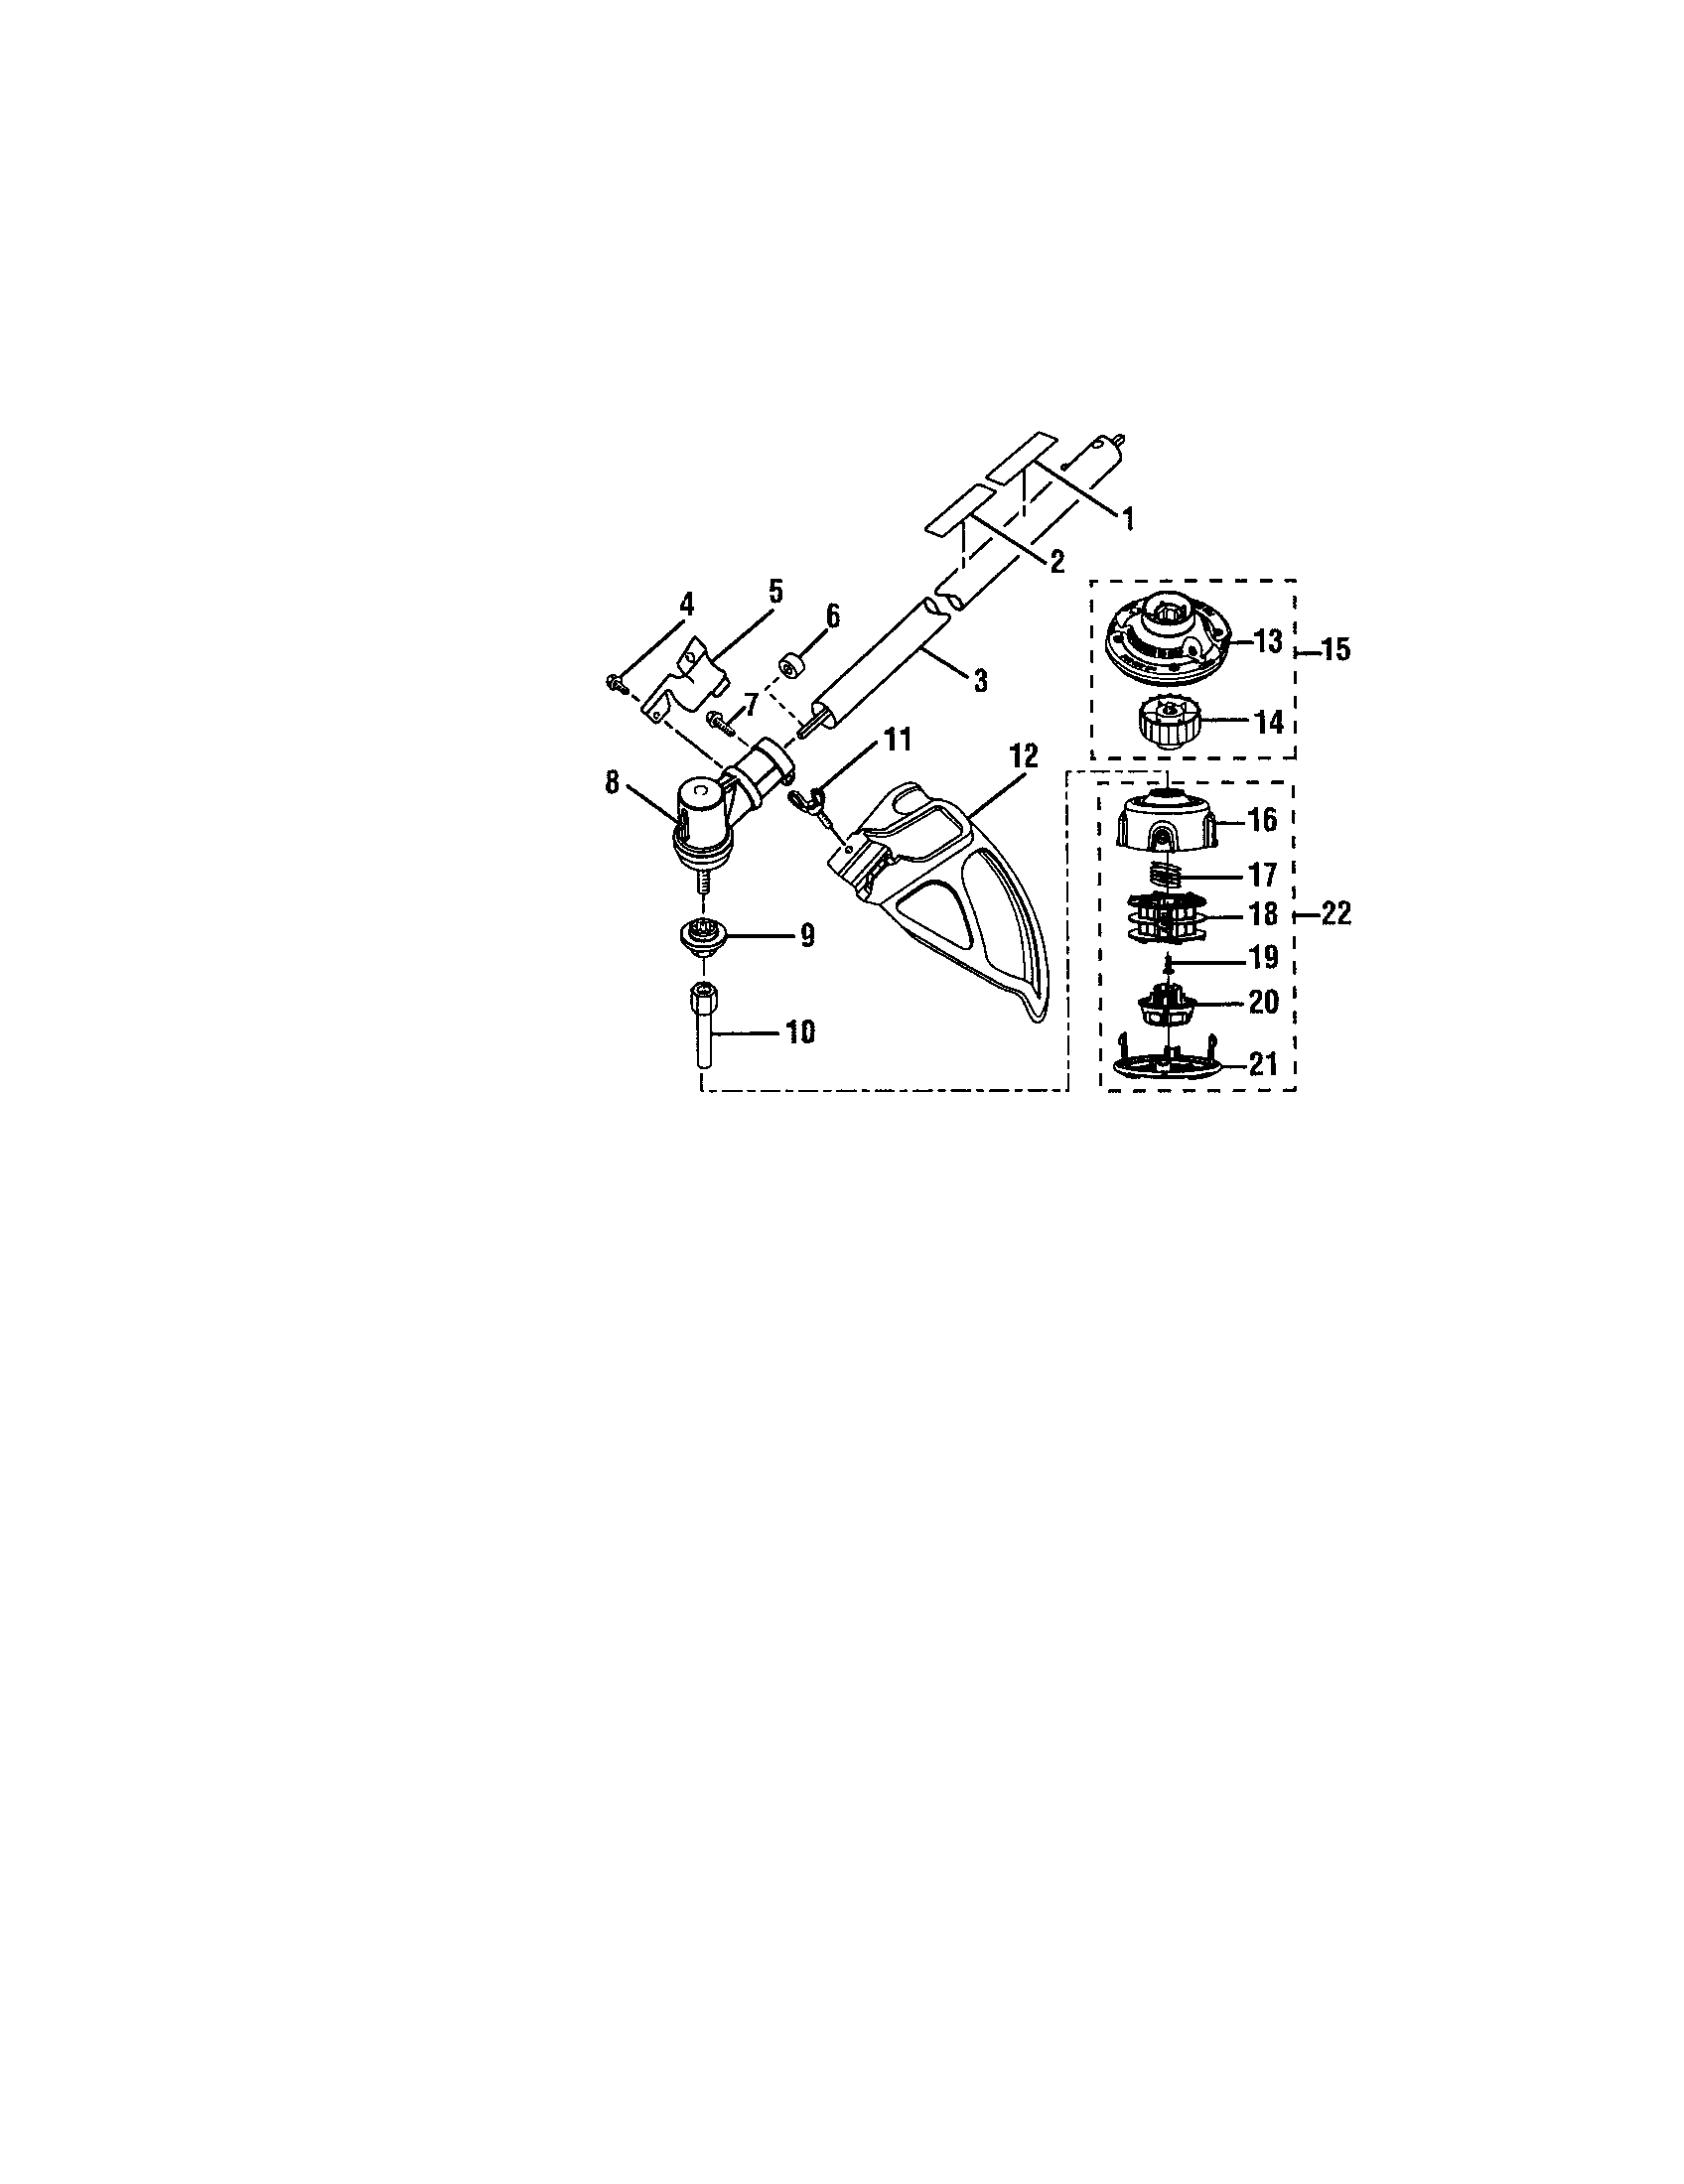 DEFLECTOR/STRING HEAD-RY30550 Diagram & Parts List for